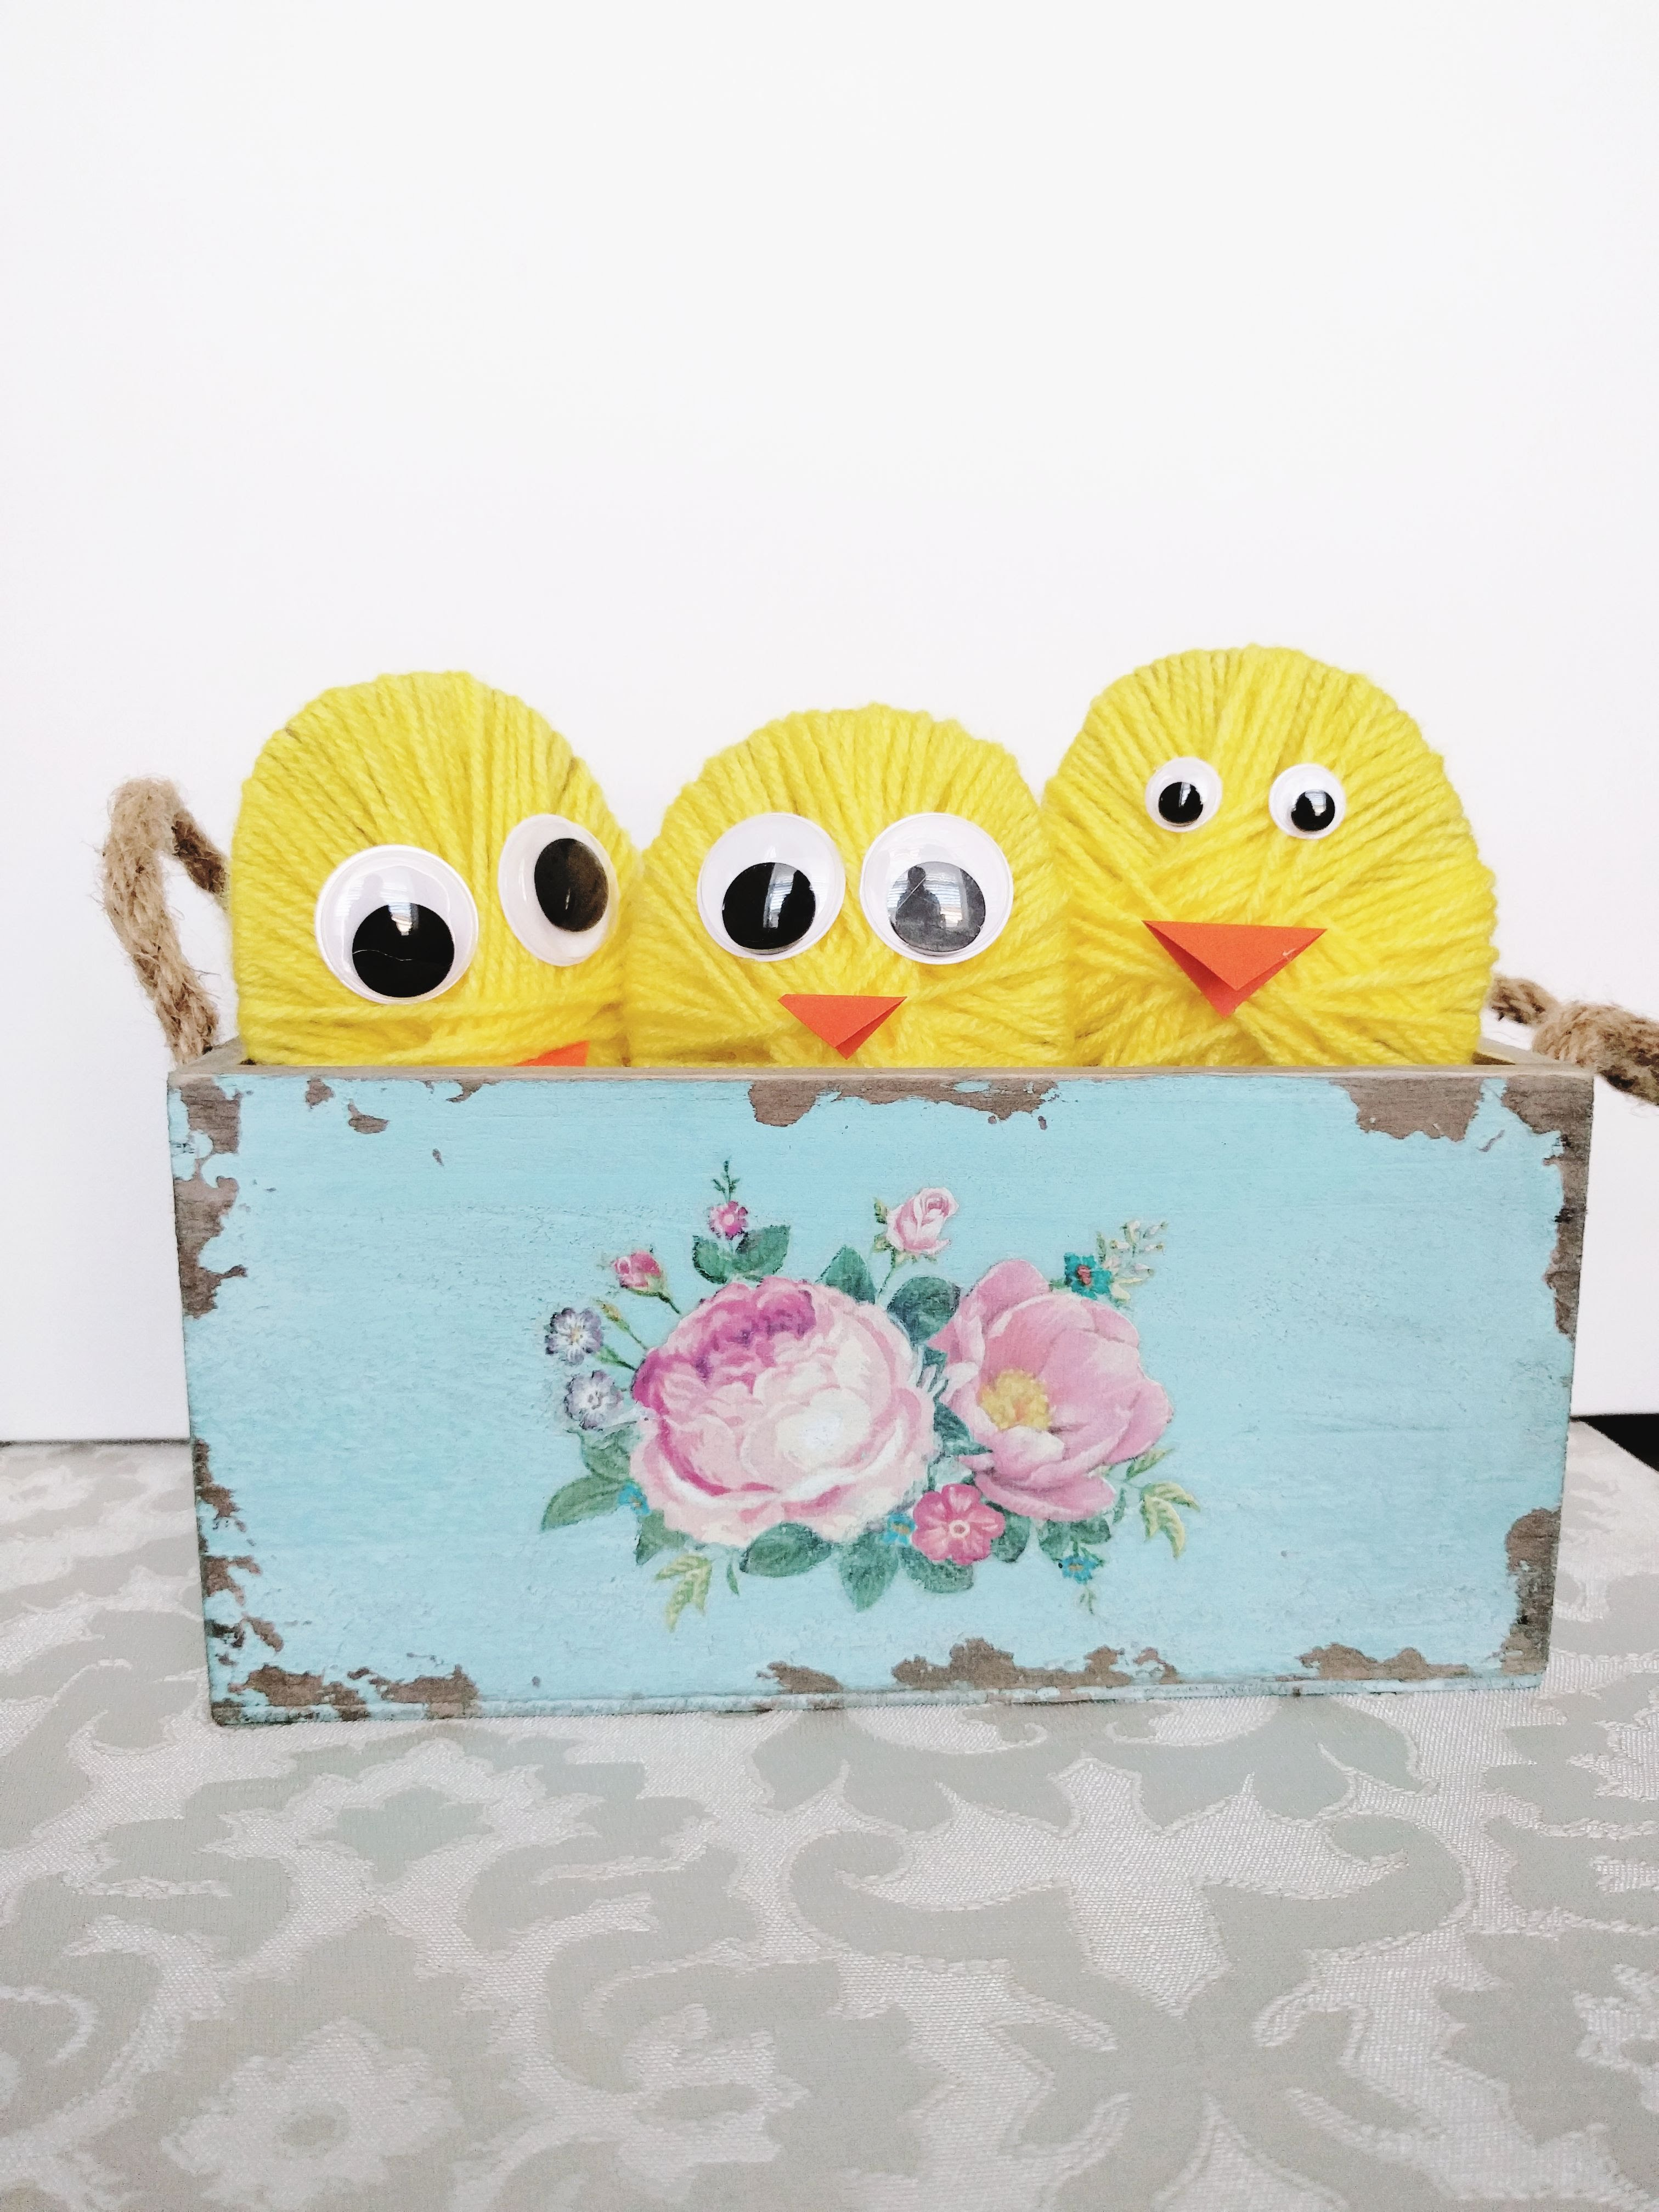 Yarn chicks spring craft